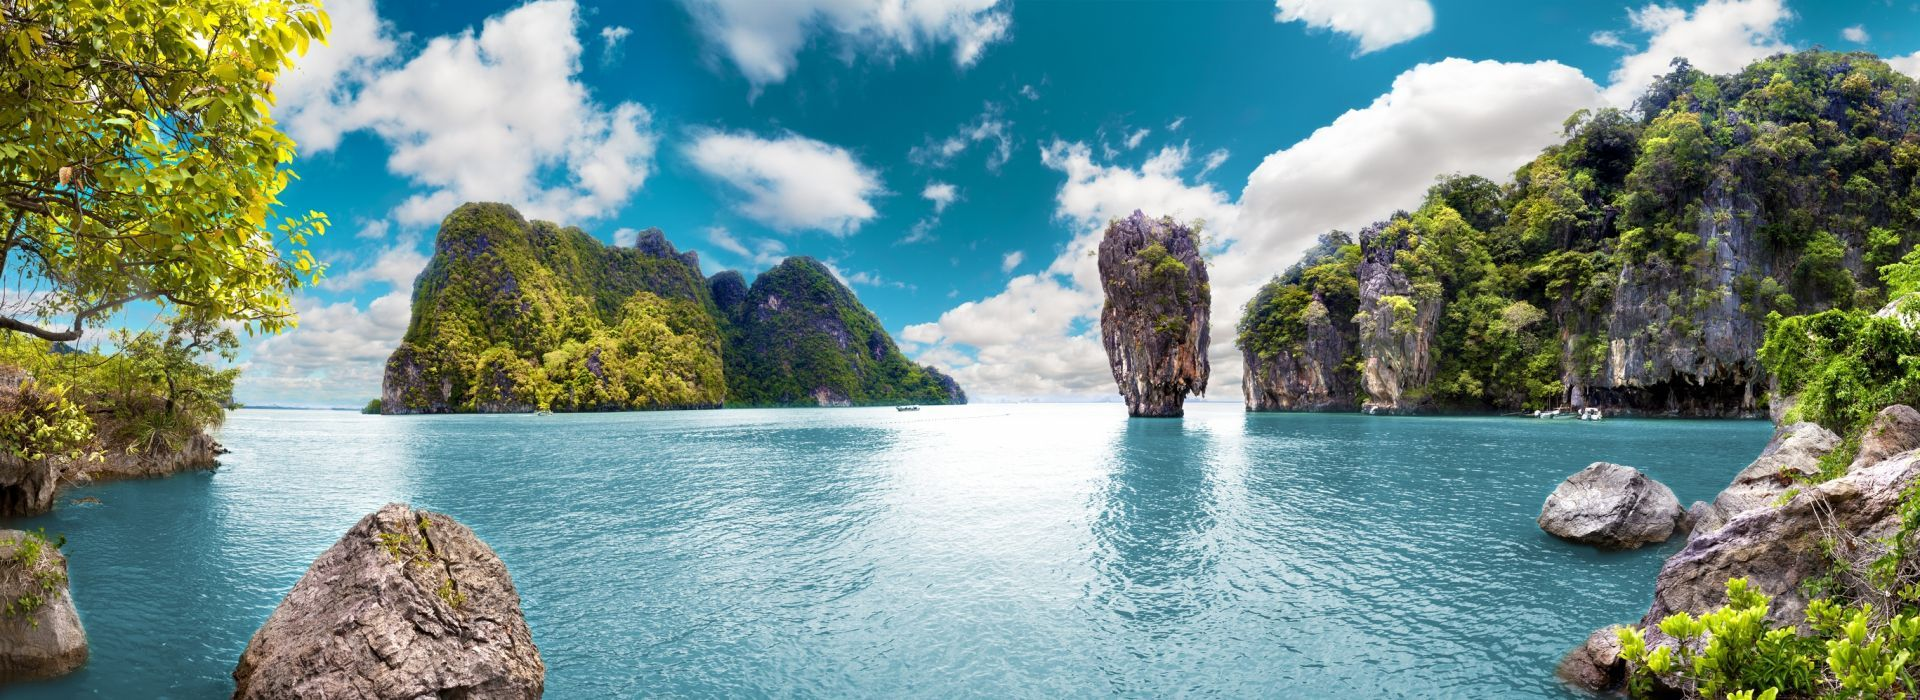 Special interests and hobbies Tours in Thailand